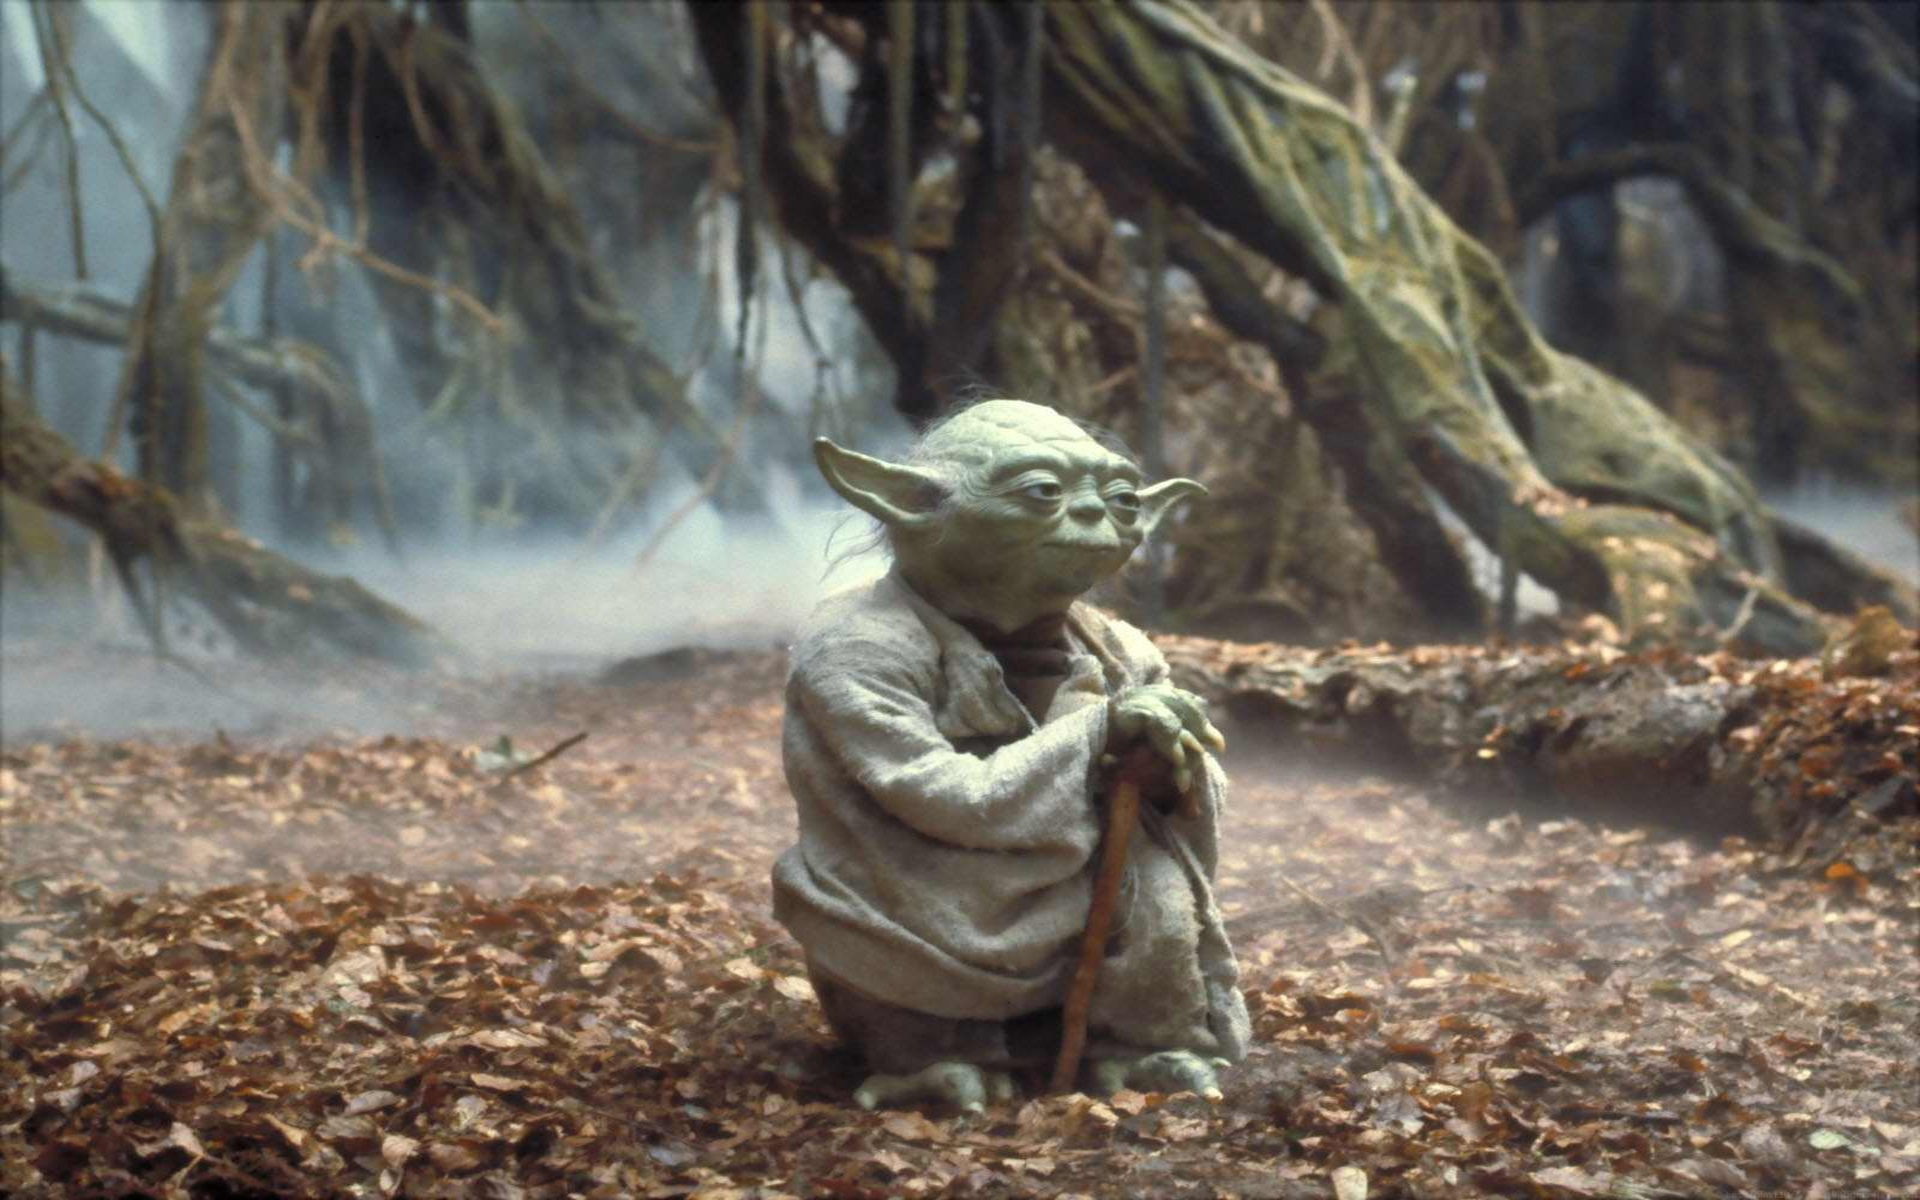 Free Download Yoda Wallpaper Hd Viewing Gallery 1920x1200 For Your Desktop Mobile Tablet Explore 76 Yoda Wallpaper Star Wars Yoda Wallpaper Jedi Master Yoda Wallpaper Hd Yoda Wallpapers For Your Computer